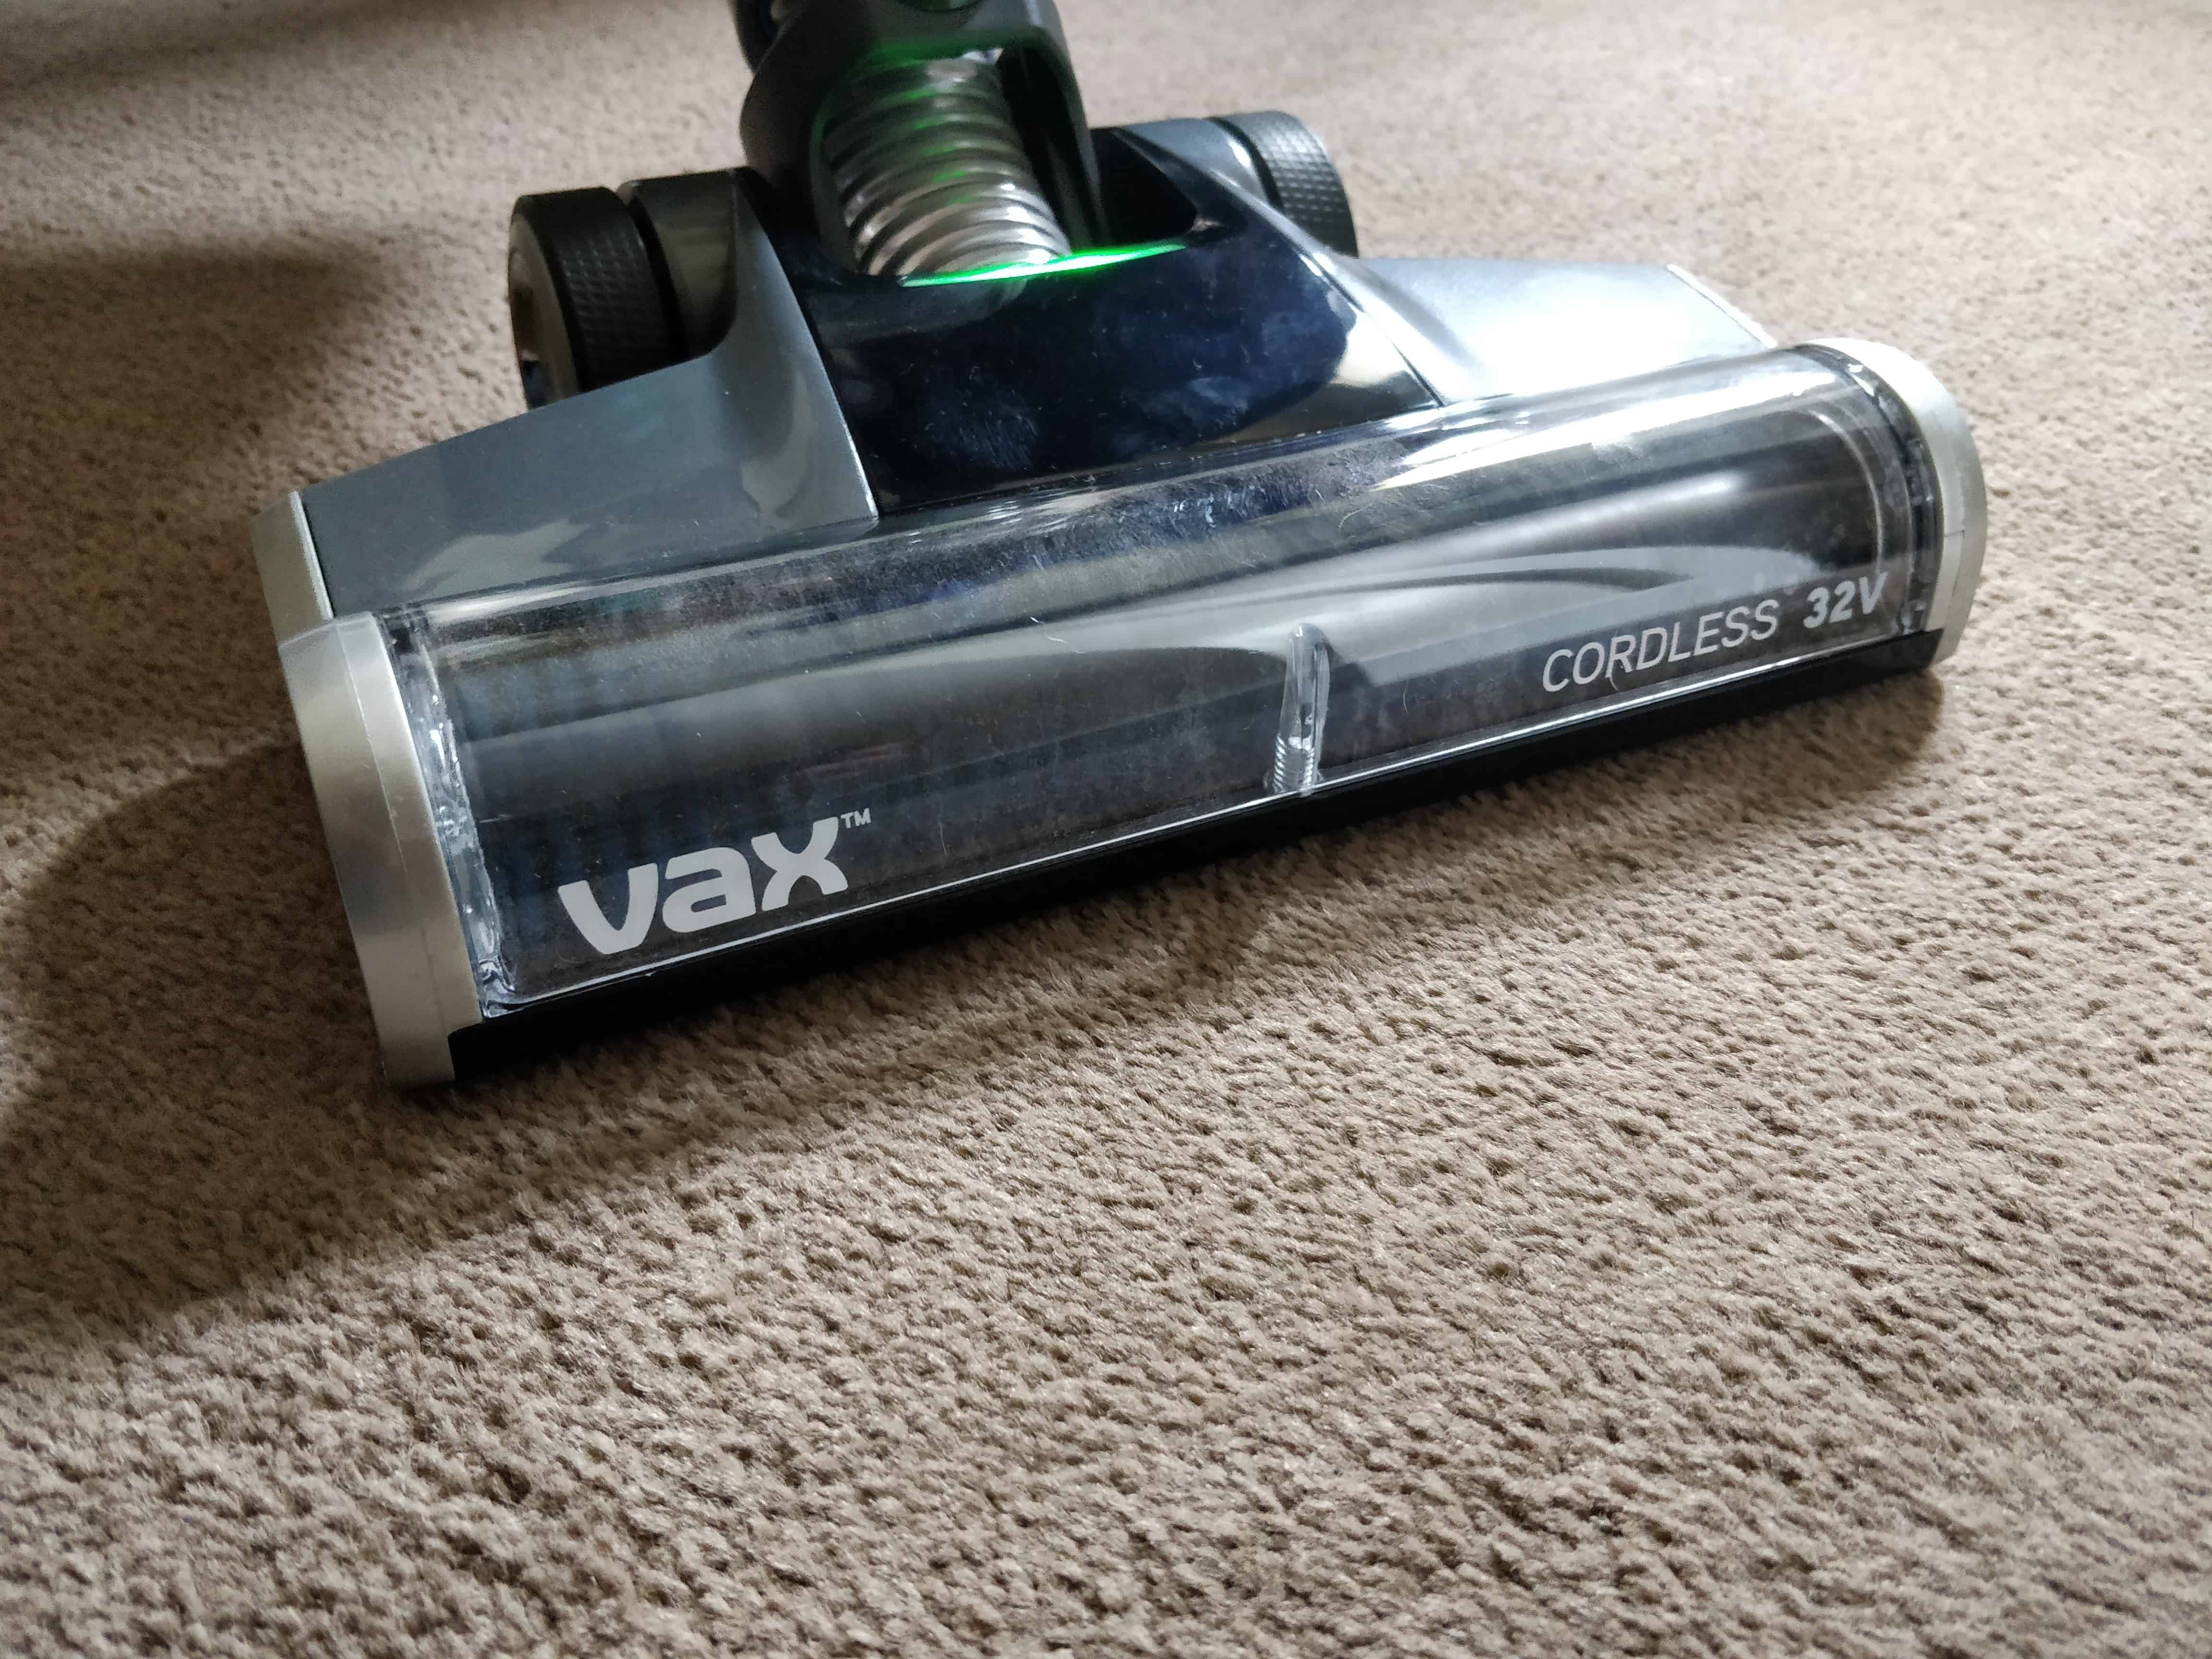 Vax Blade 32v Cordless Vacuum Cleaner Review Soph Obsessed